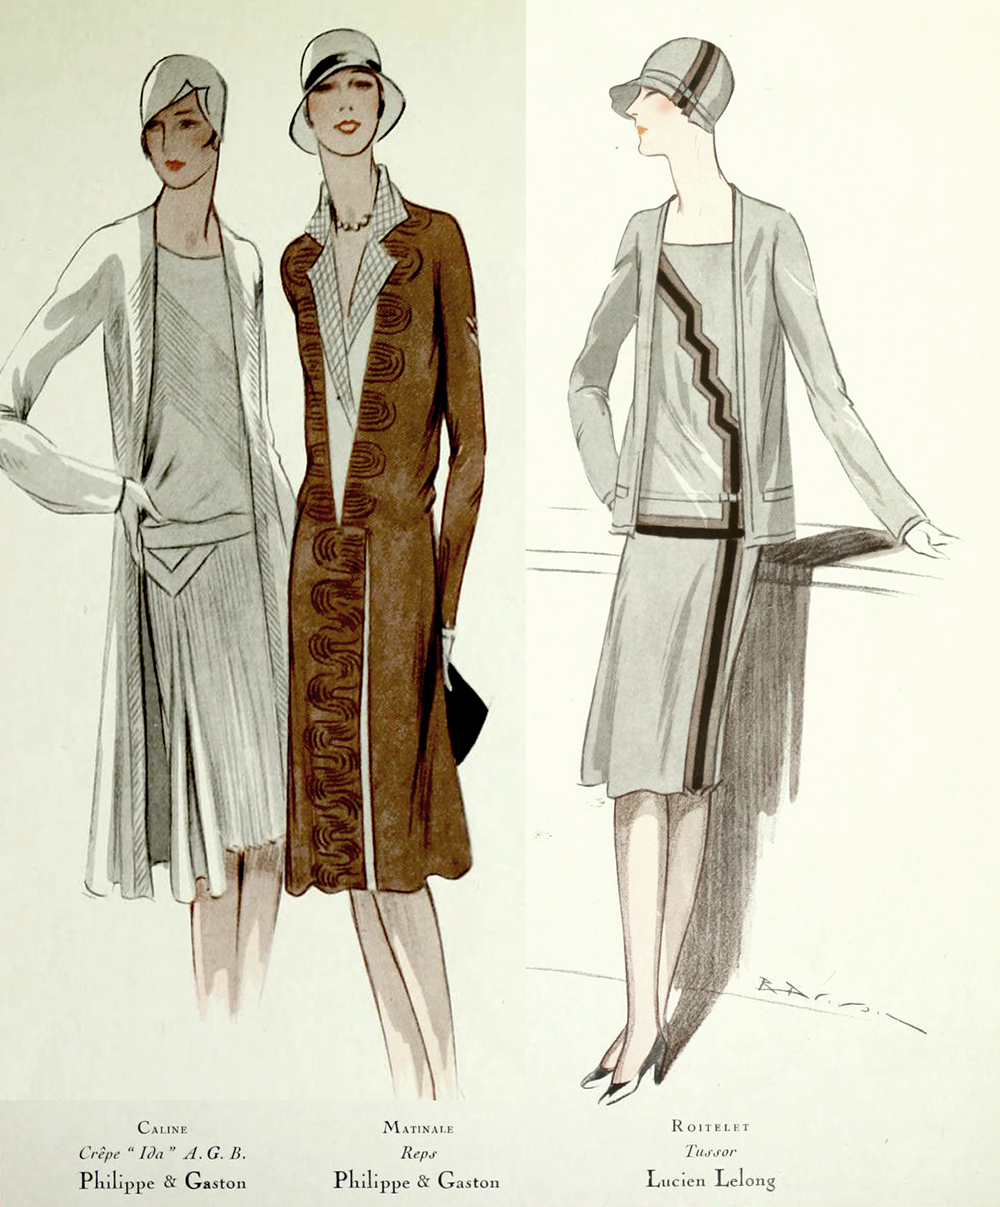 1920s Fashion - Paris 1928 - Philippe & Gaston, Lucien Lelong